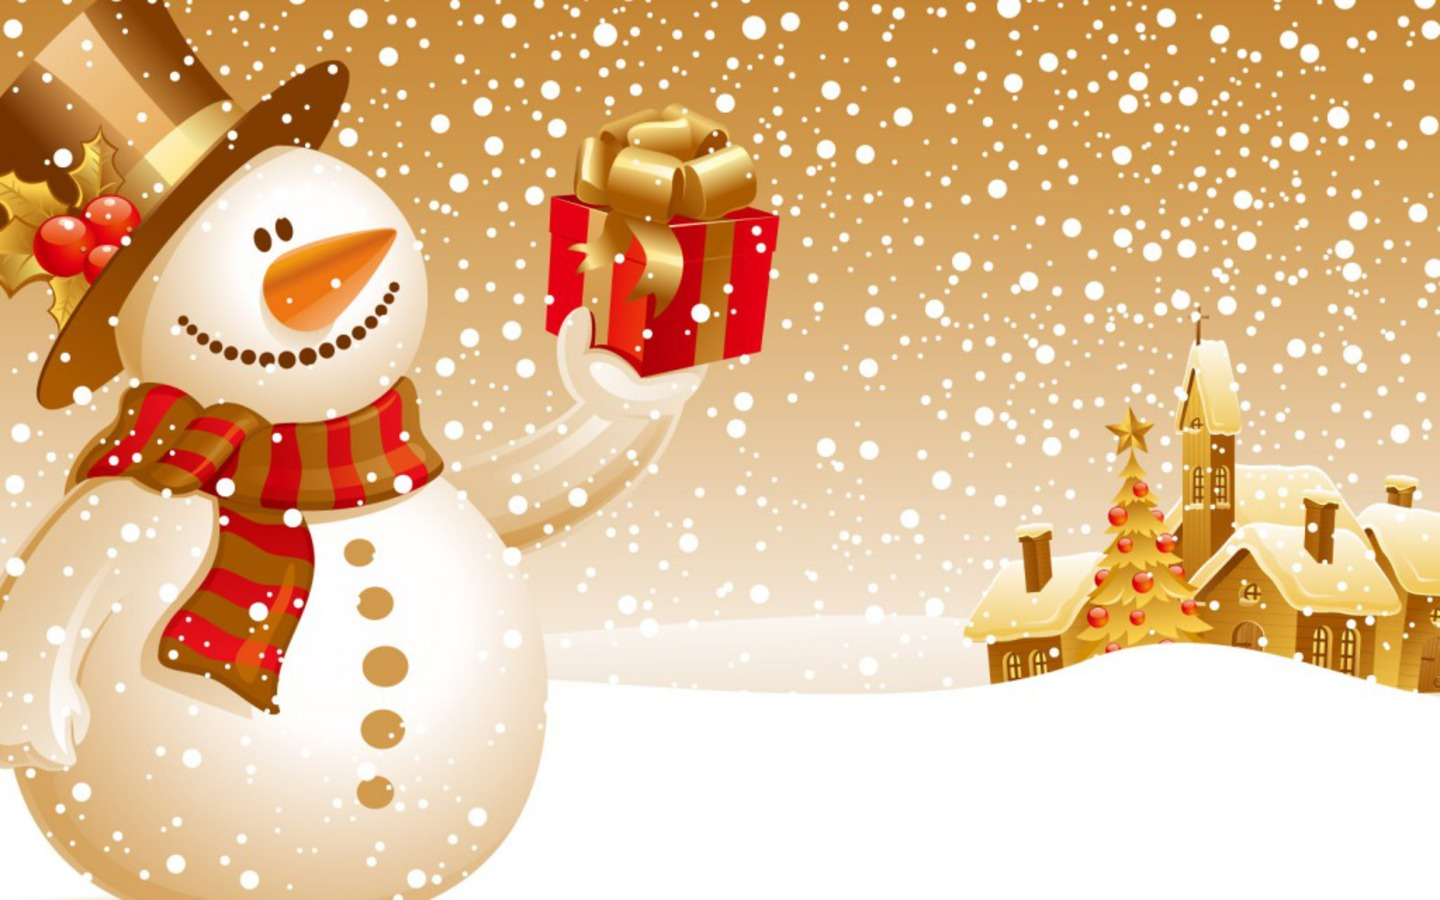 christmas screensavers photo wallpapers, christmas screensavers photo images